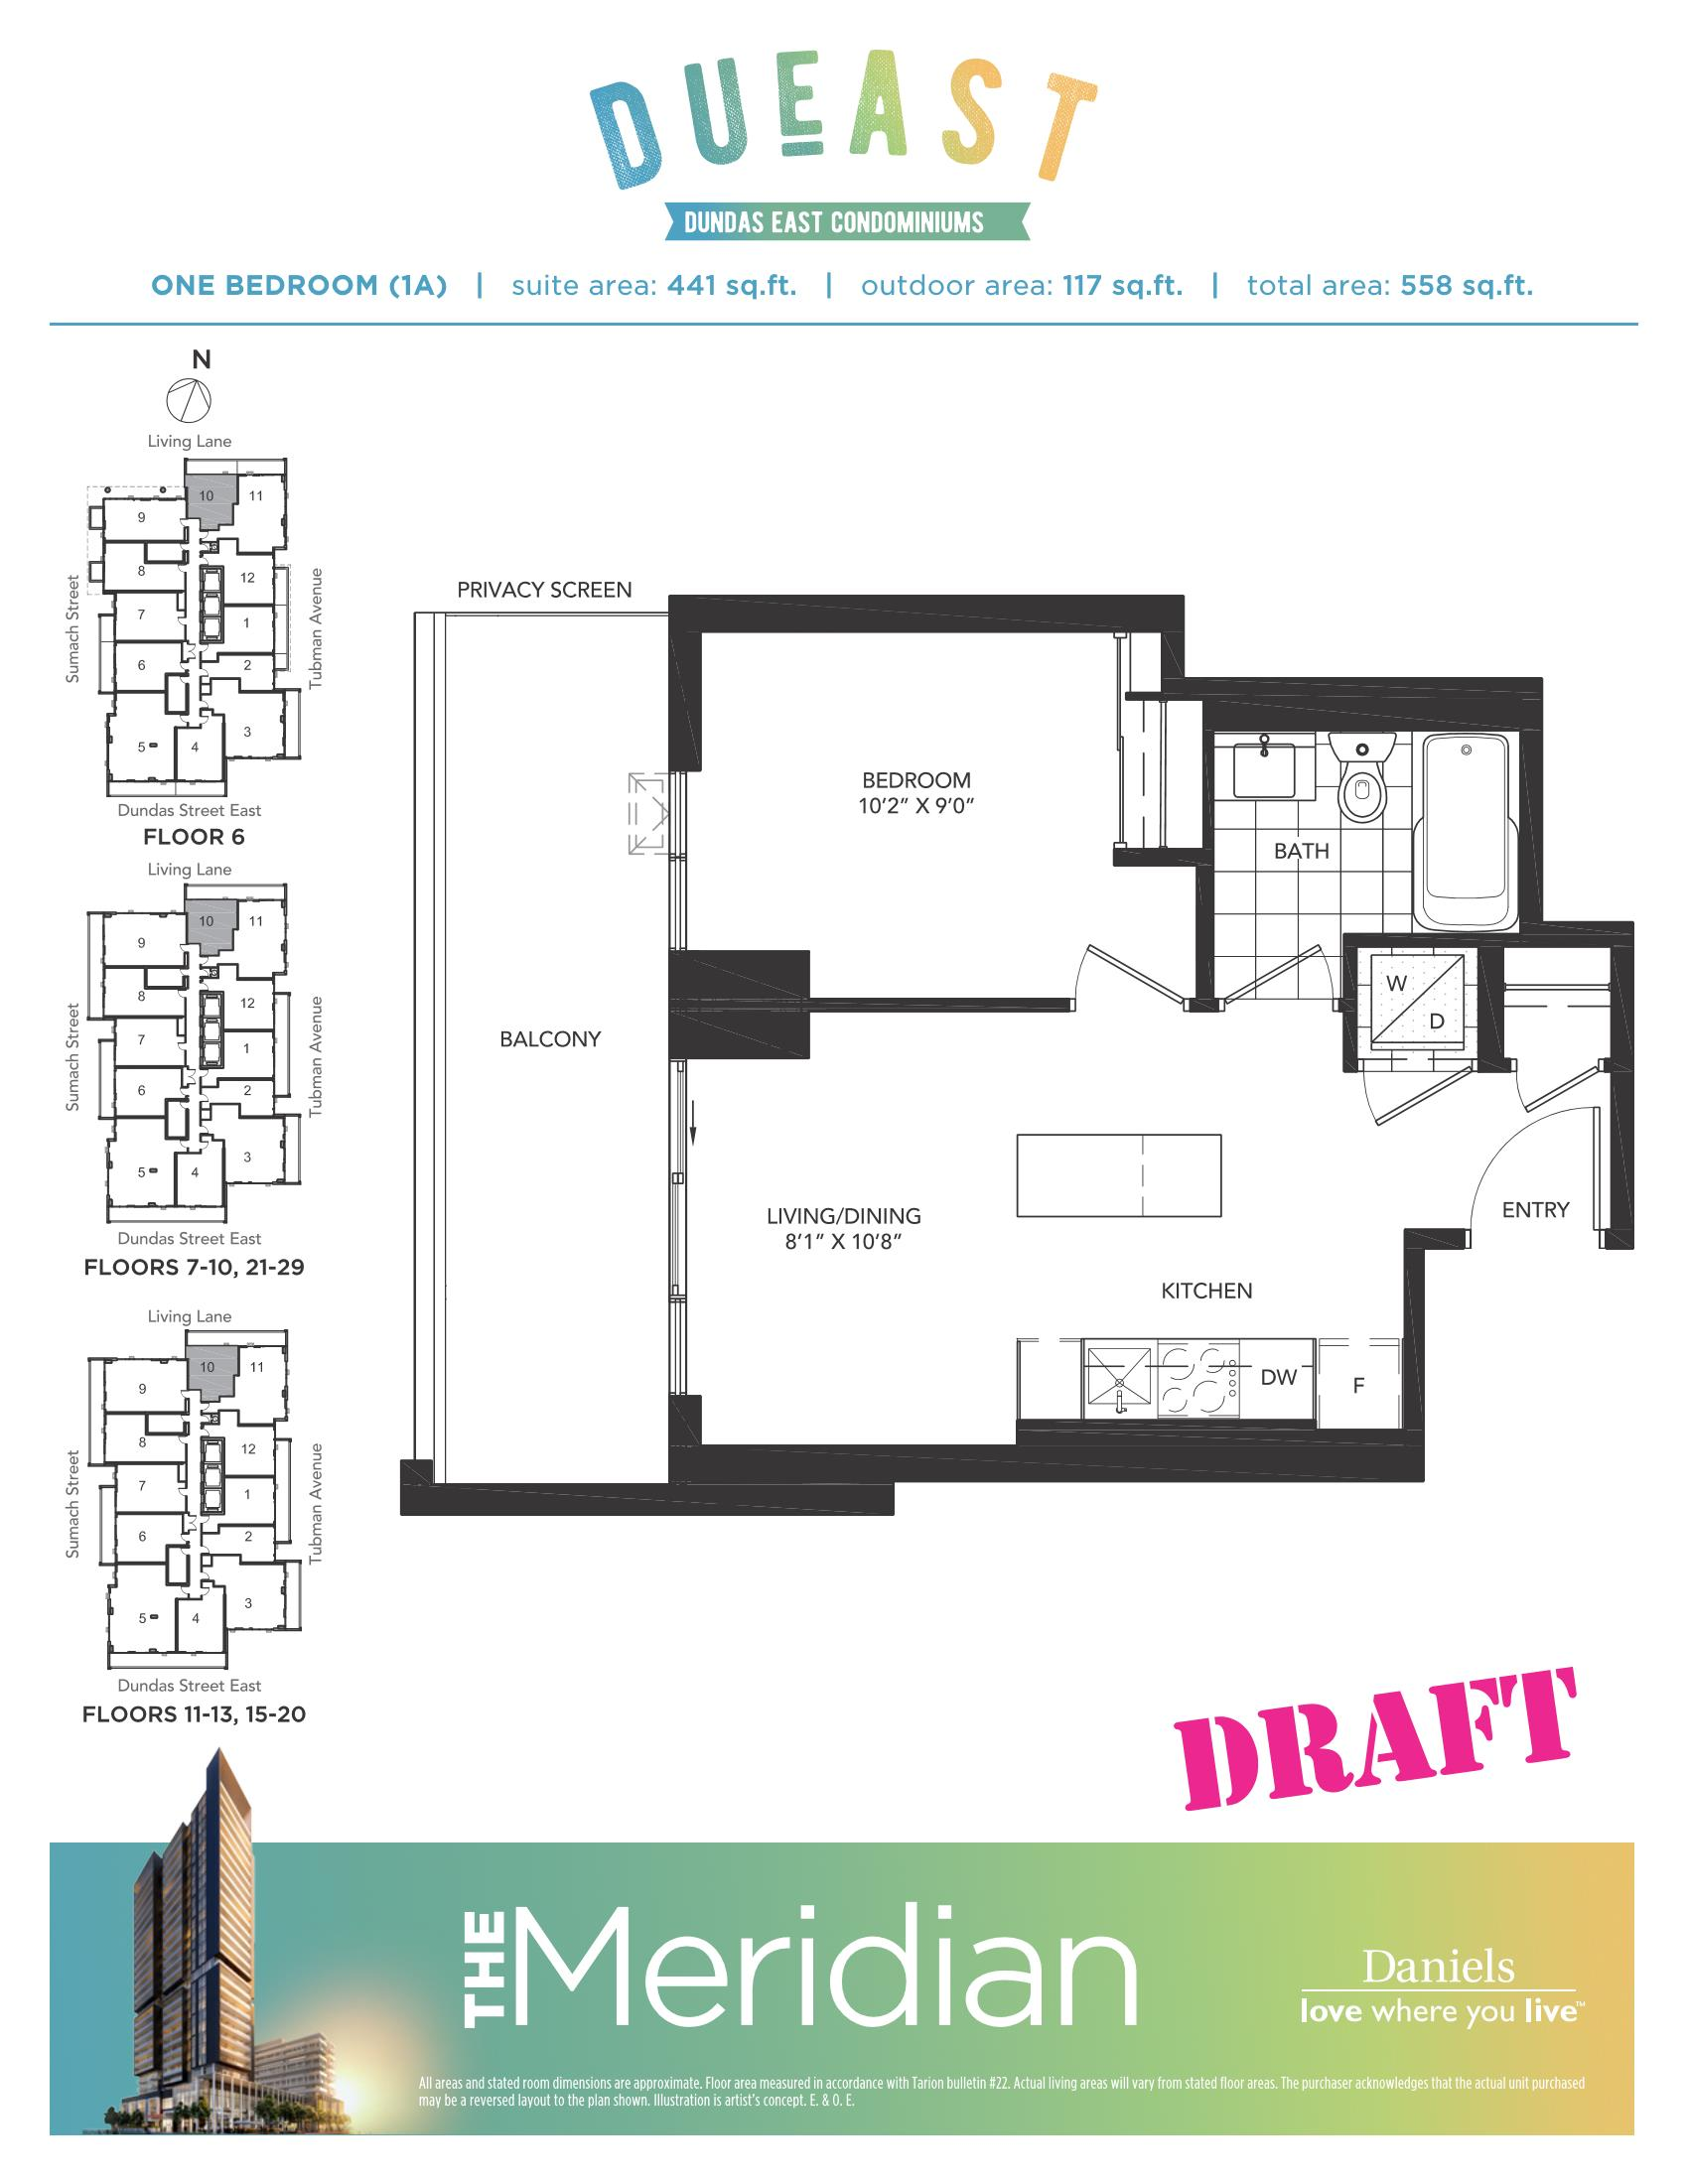 Dueast condos floorplans pricing platinum access for Condo blueprints